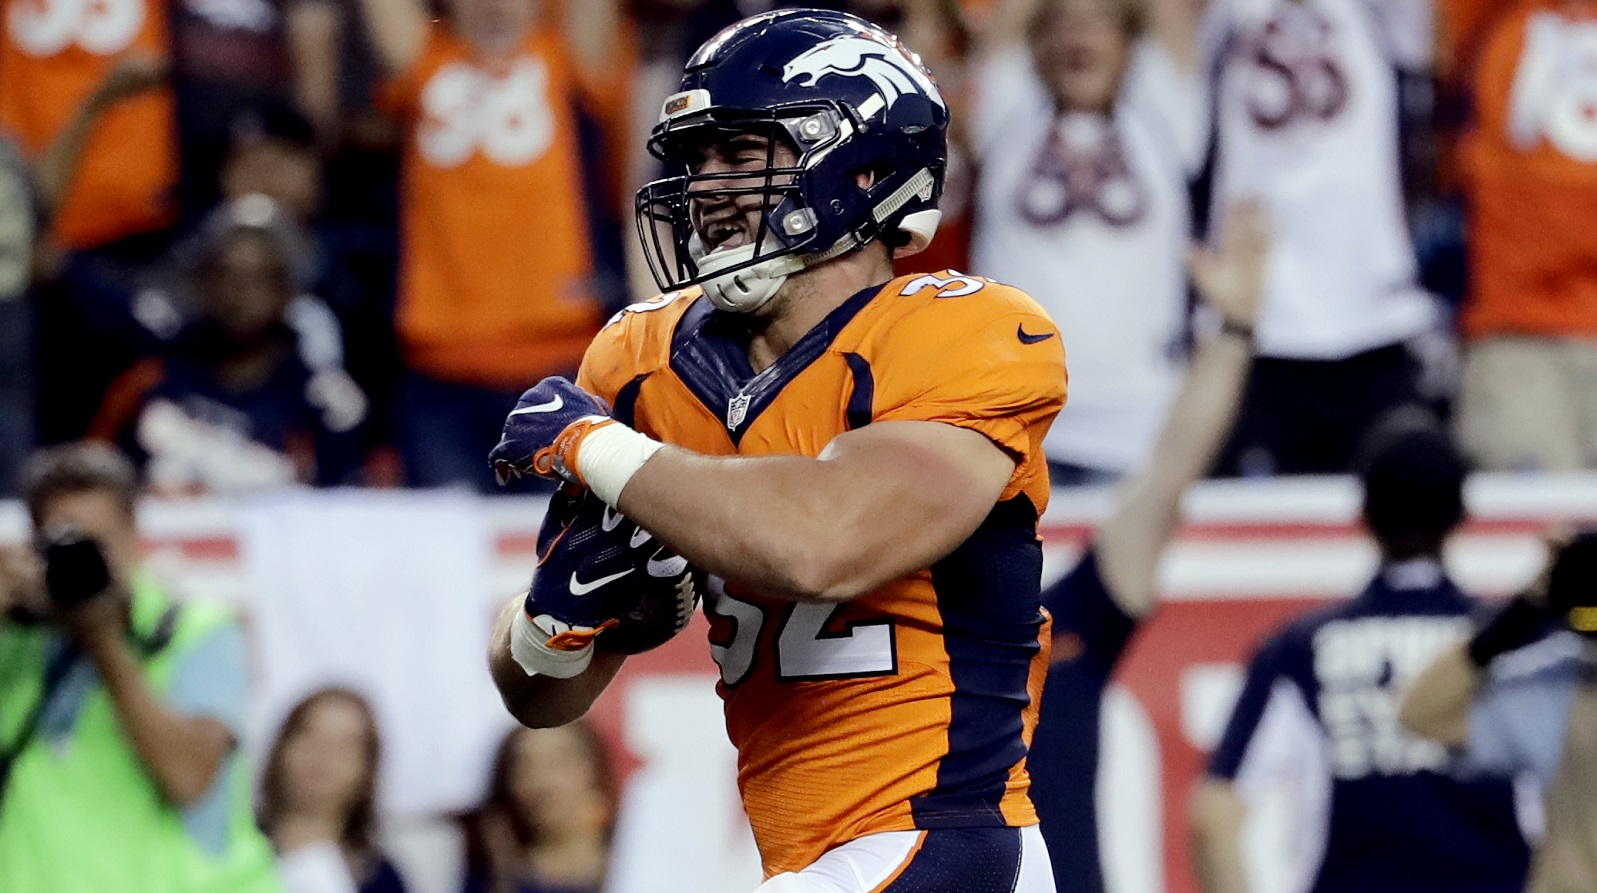 Broncos fullback Andy Janovich scores team's first TD of the year